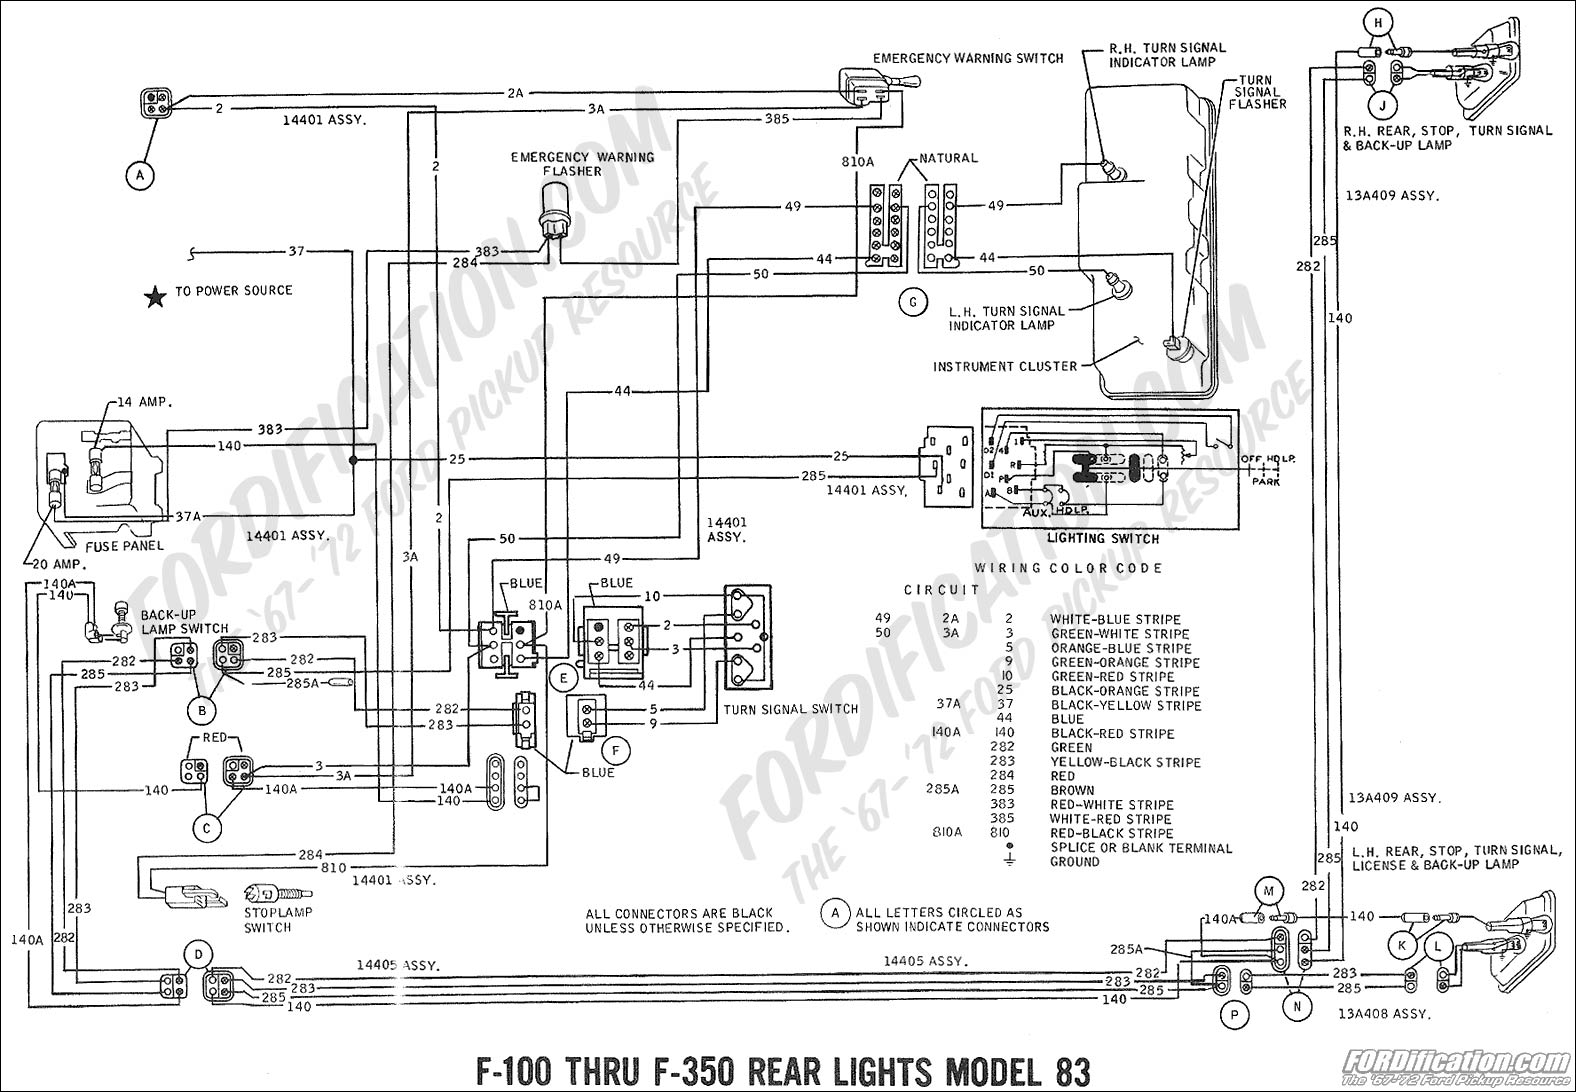 1984 Ford Mustang Wiring Diagram Radio 2002 Ranger Schematic Data Diagrams 1980 Alternator Thousand Collection Of Rh Mmucc Us 1995 F 150